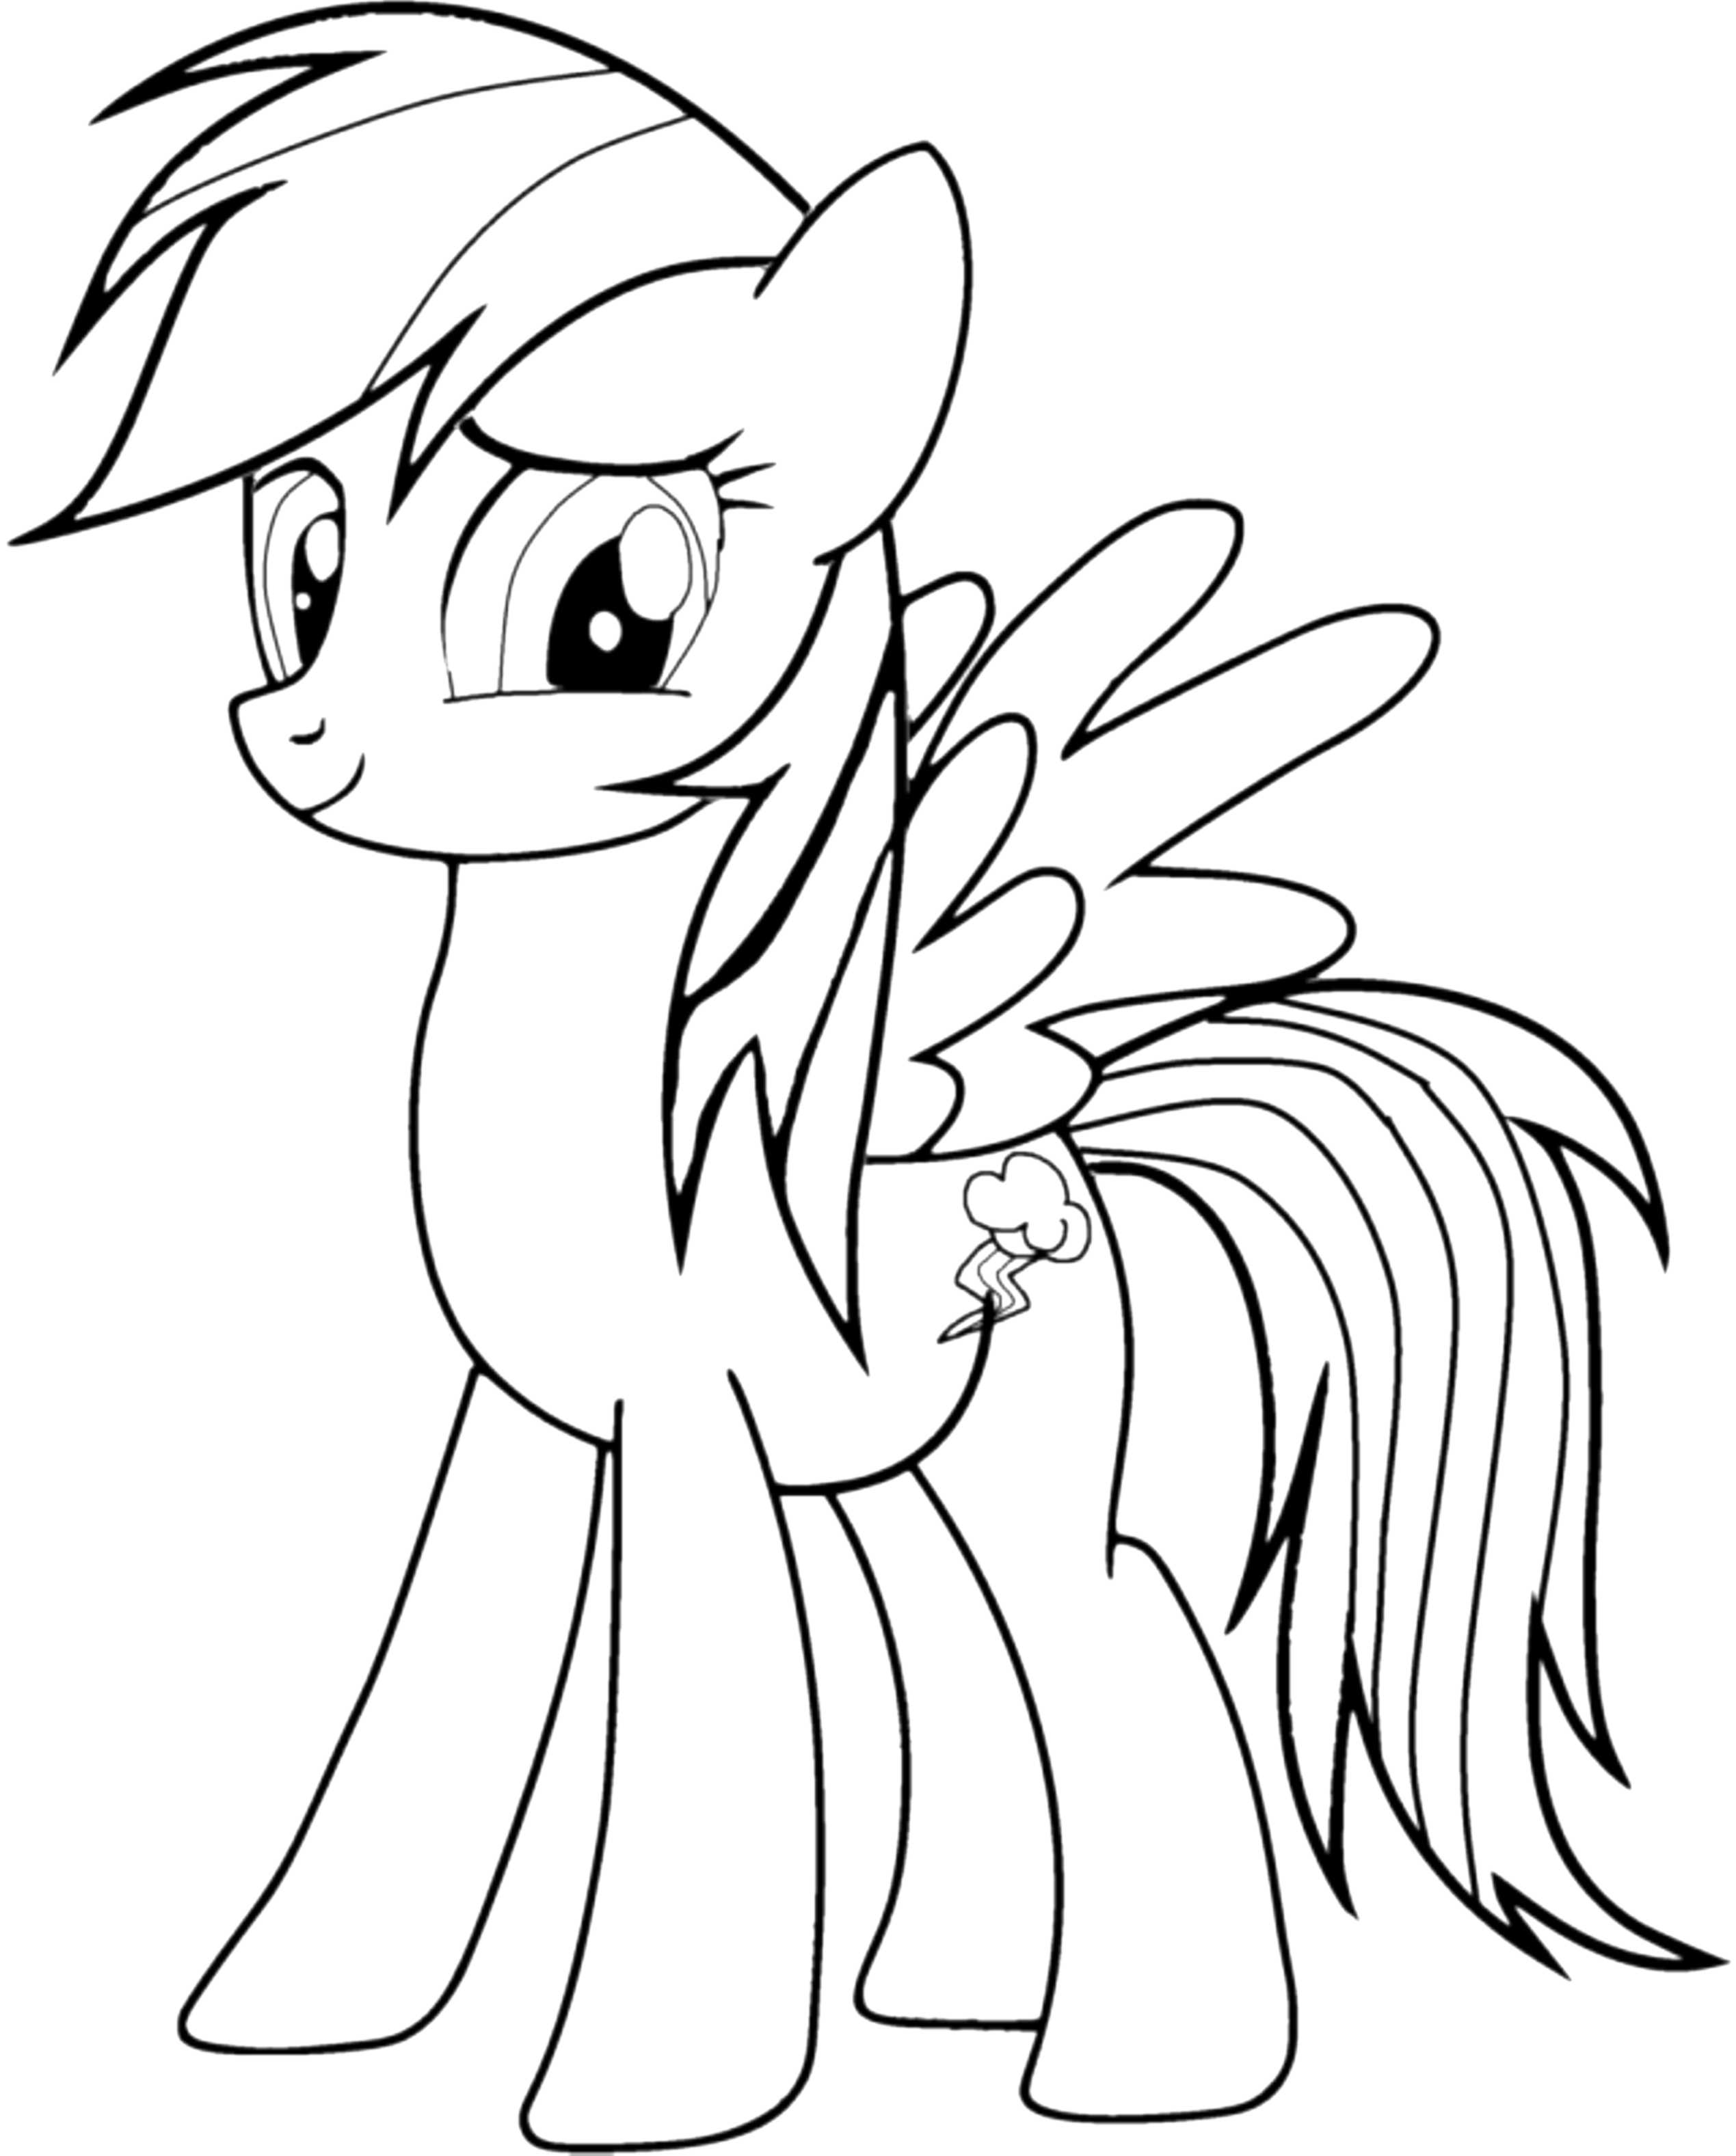 coloring rainbow dash rainbow dash coloring pages best coloring pages for kids rainbow dash coloring